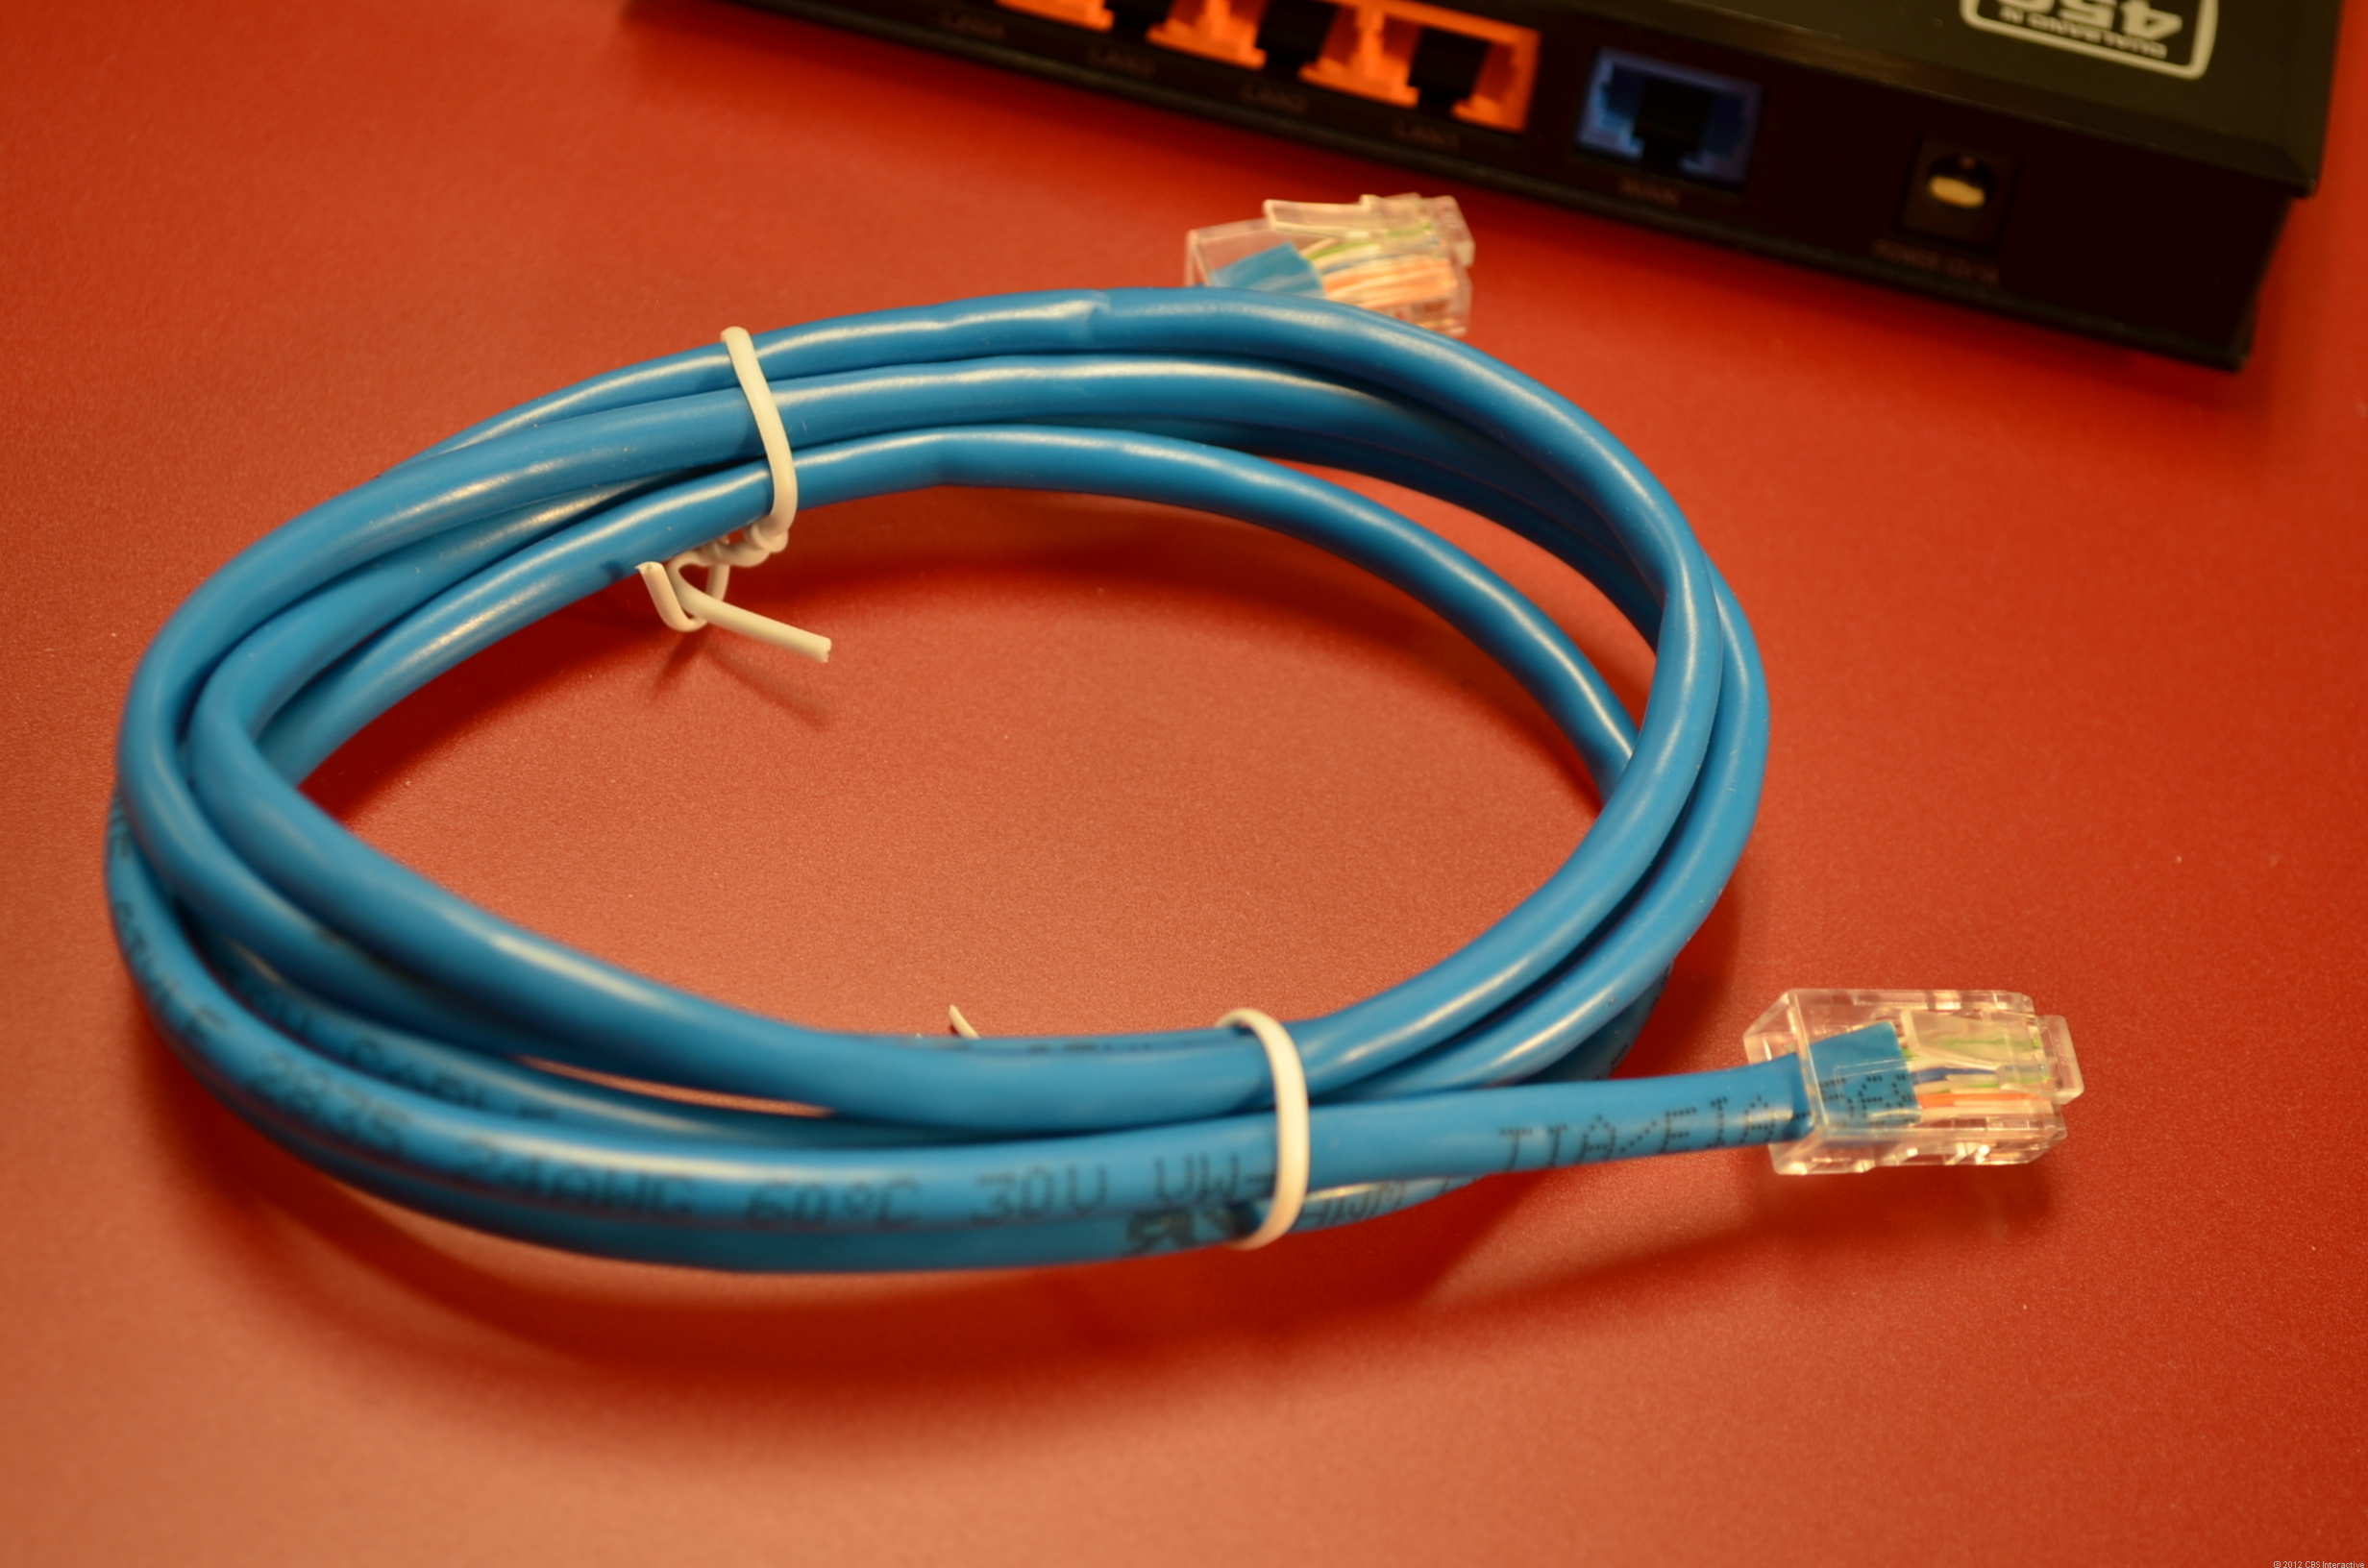 A typical CAT5e network cable.